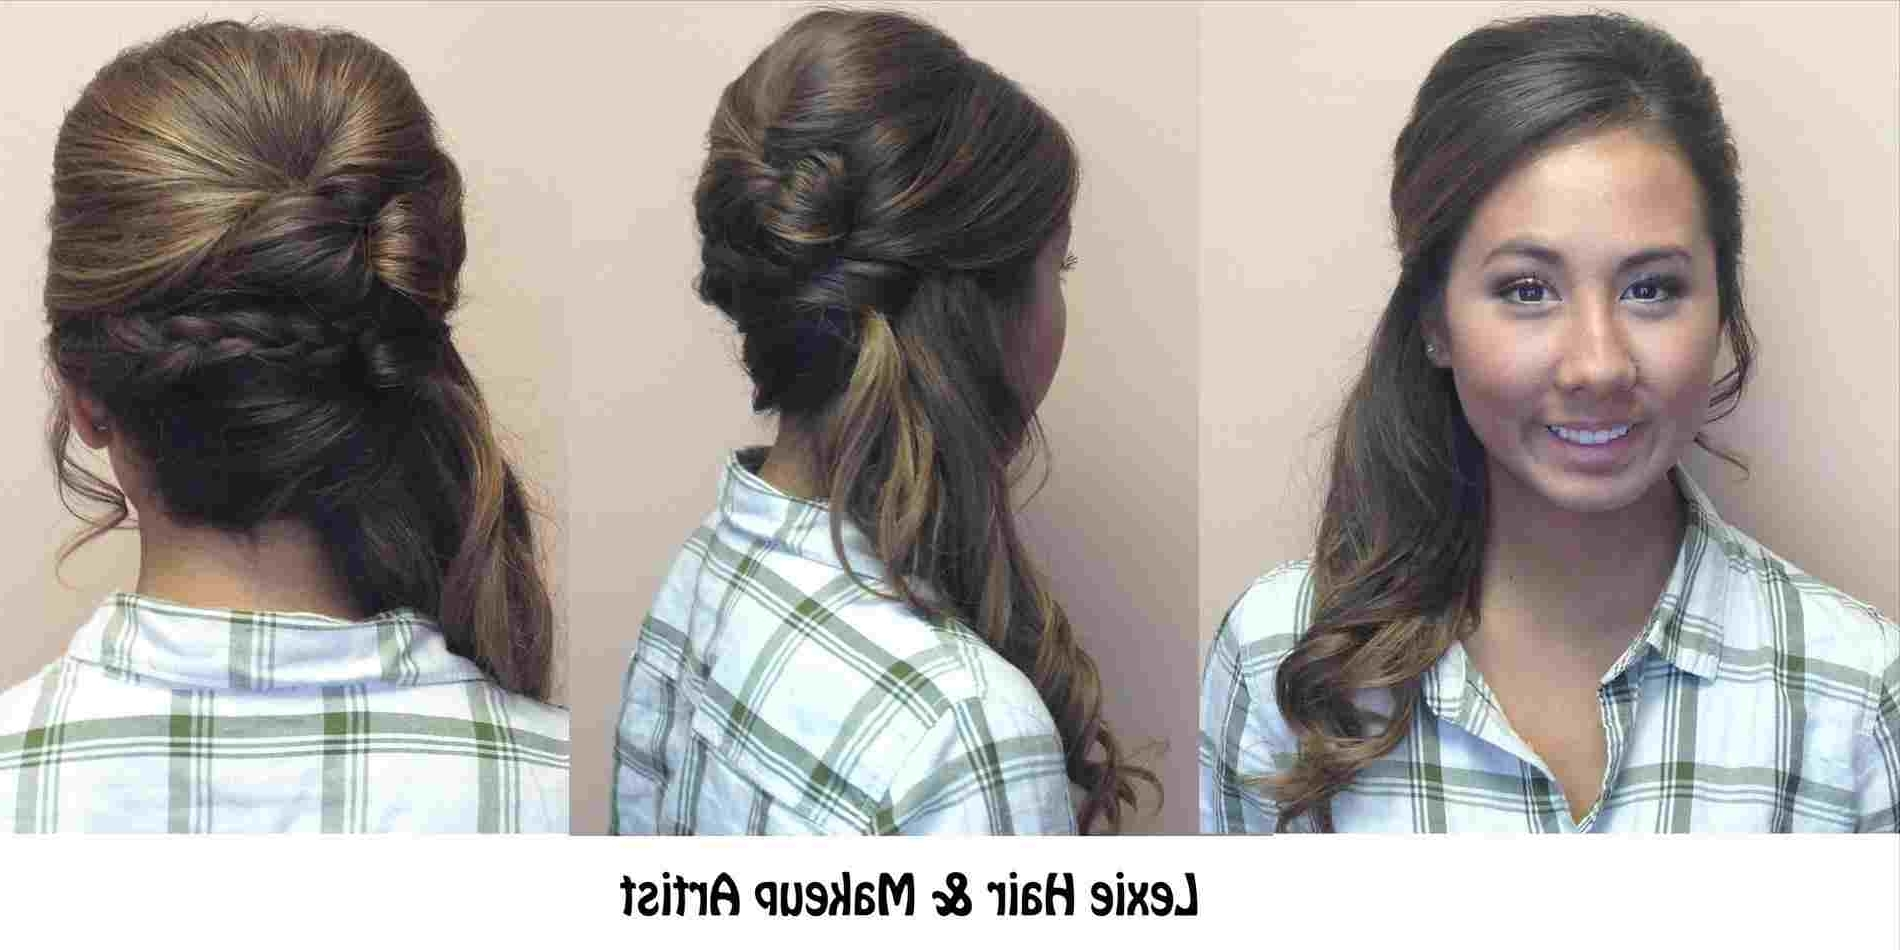 Looks Rhpinterestcom Side Ponytail With Braid And Volume Wedding Intended For Most Current Side Ponytail Hairstyles With Braid (View 9 of 20)